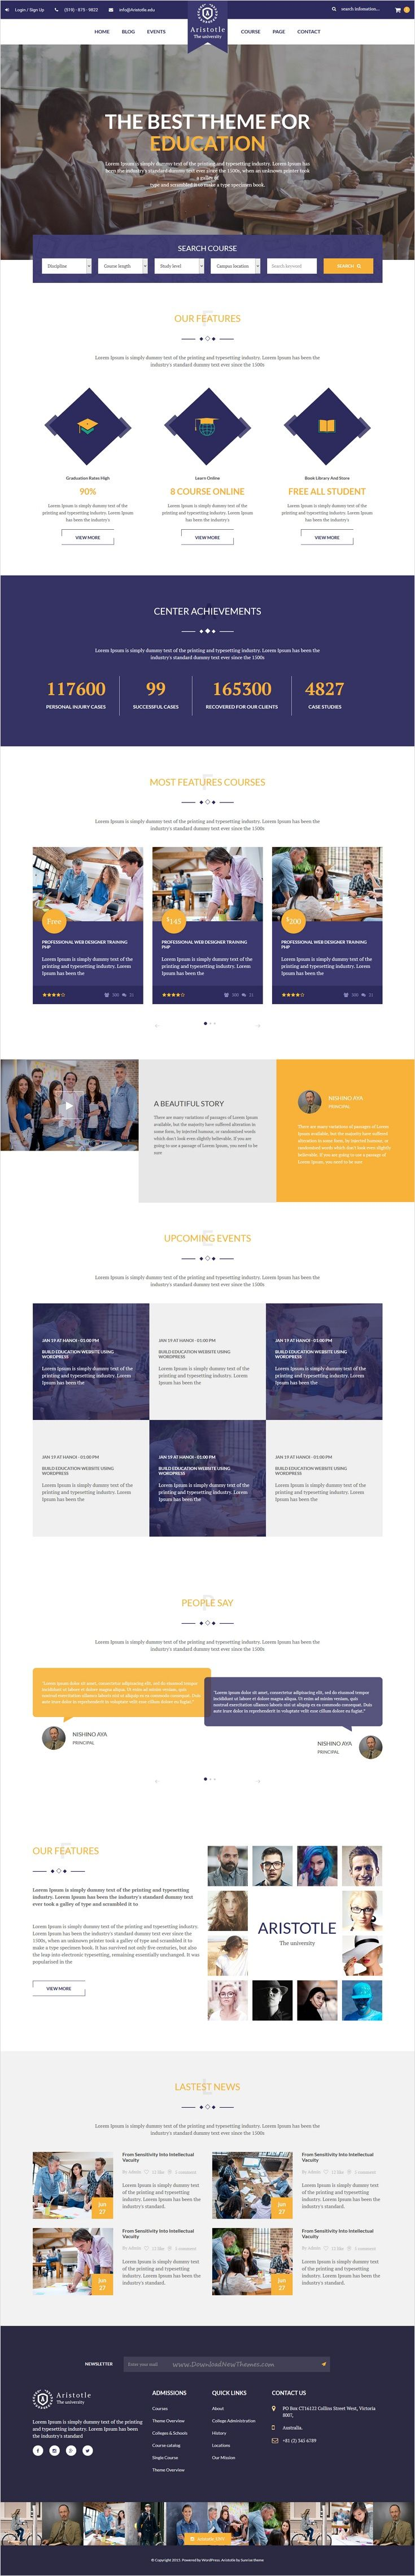 Aristotle is perfect 4 in 1 #bootstrap HTML #template for College, #University, #School, Academy, Online Courses, Online Tutors, LMS and all other Educational Institutions websites download now➩ https://themeforest.net/item/aristotle-education-html-template/17437662?ref=Datasata